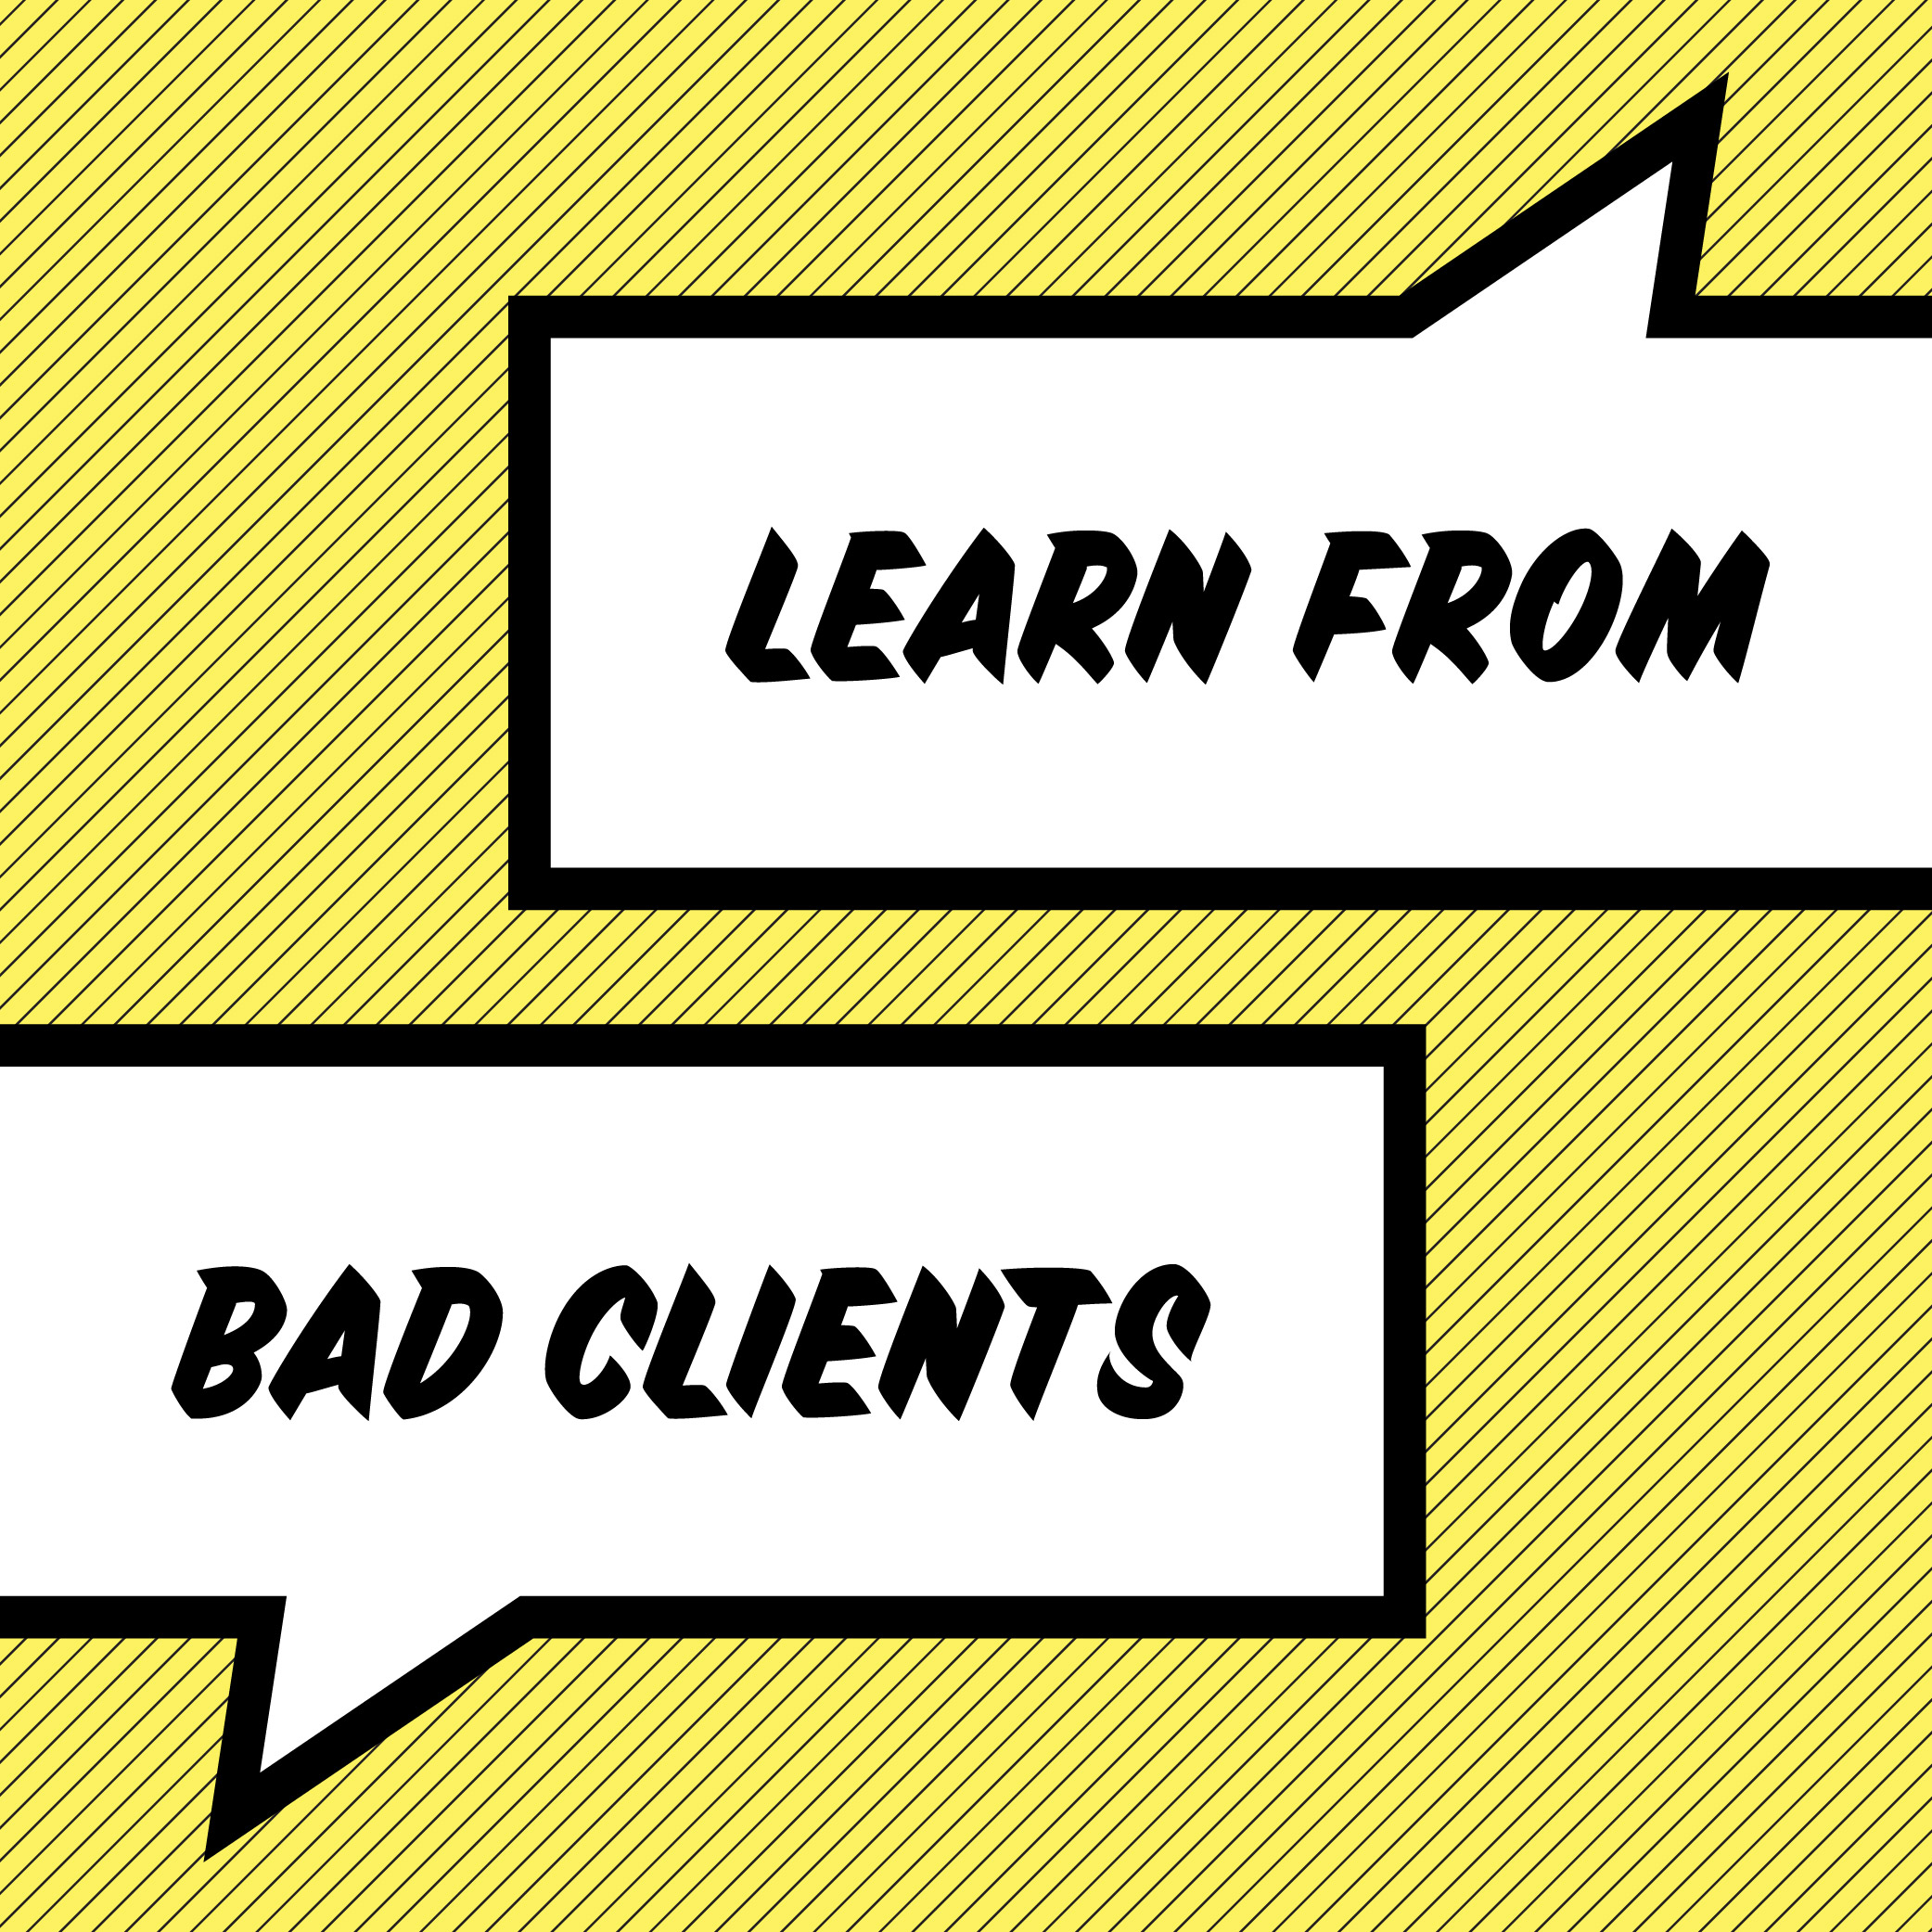 Learn from bad clients - nuschool